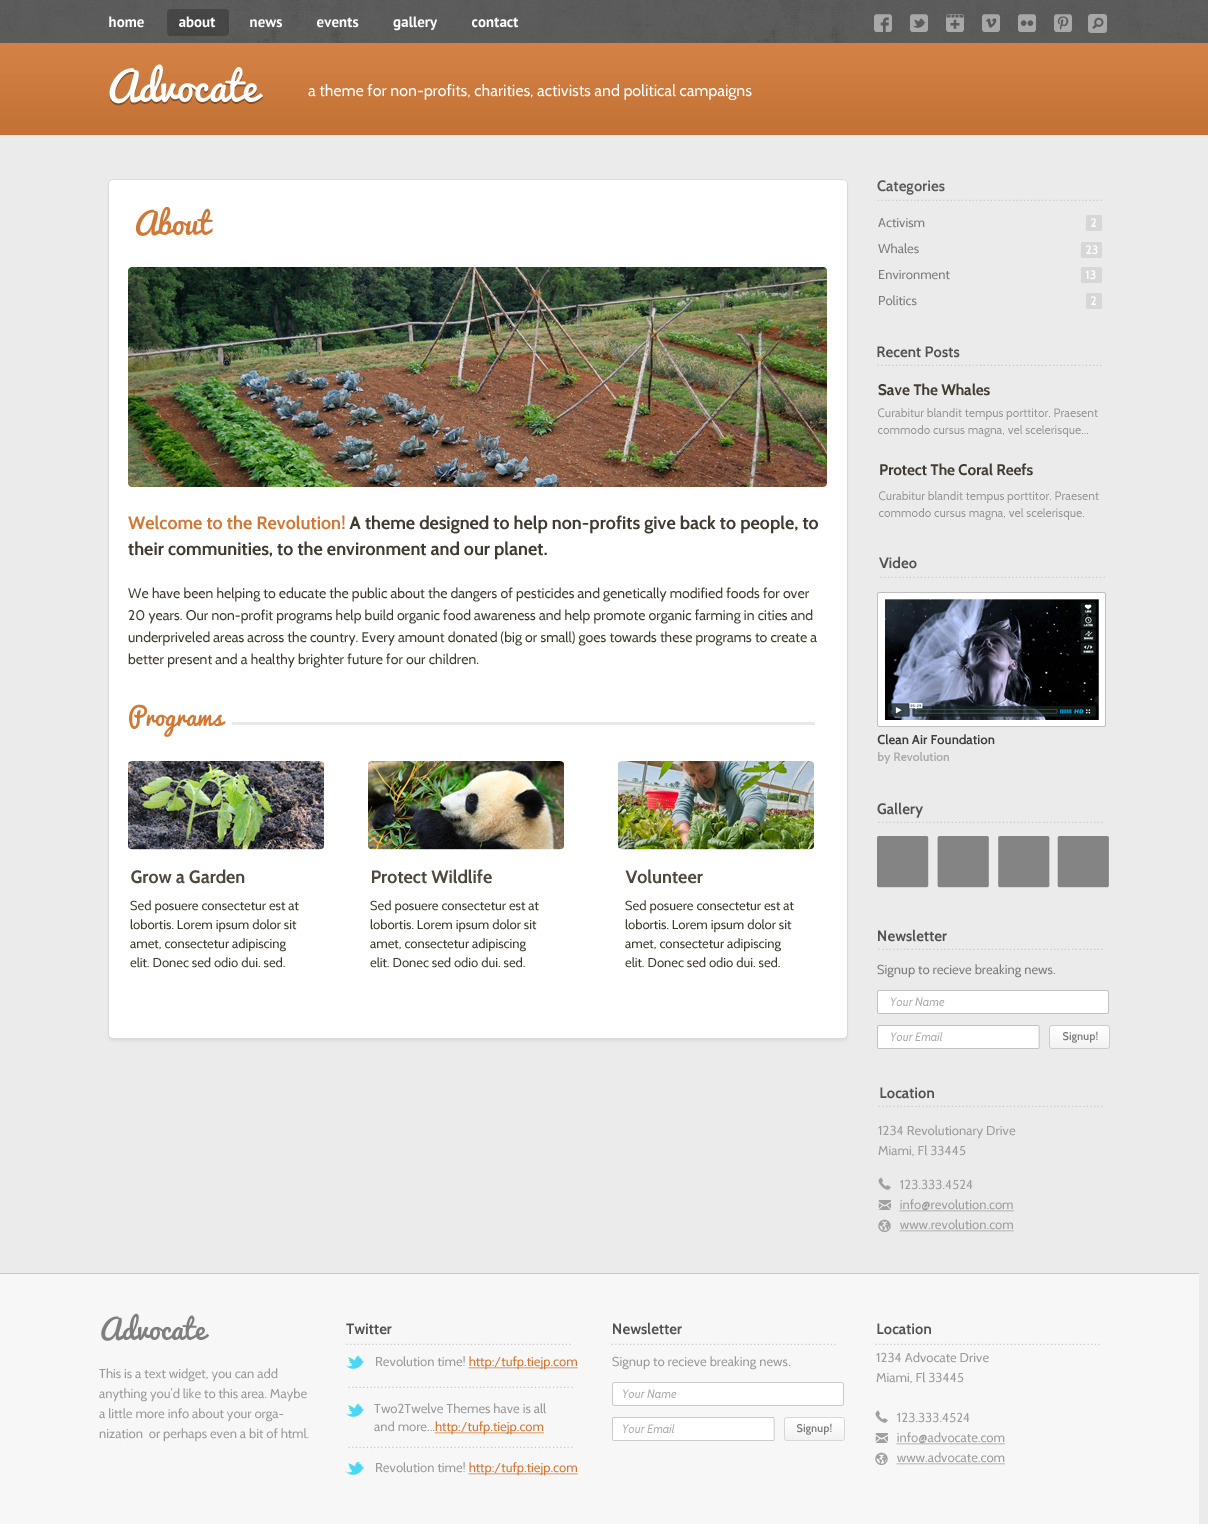 Advocate - A Nonprofit WordPress Theme - About - The About page lets you display information about your cause or campaign as well as details about your programs or the members of your organization.